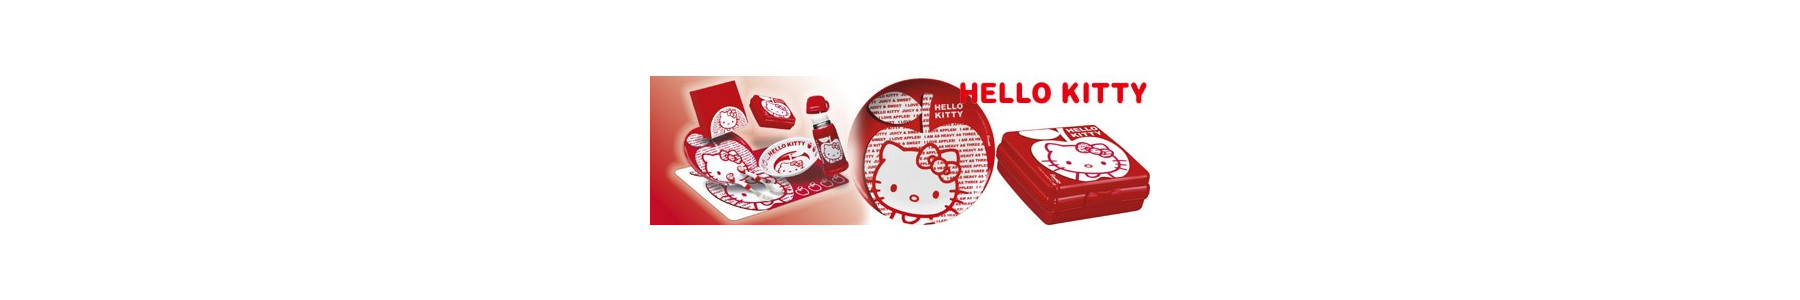 Colectia party melamina Hello Kitty Apple